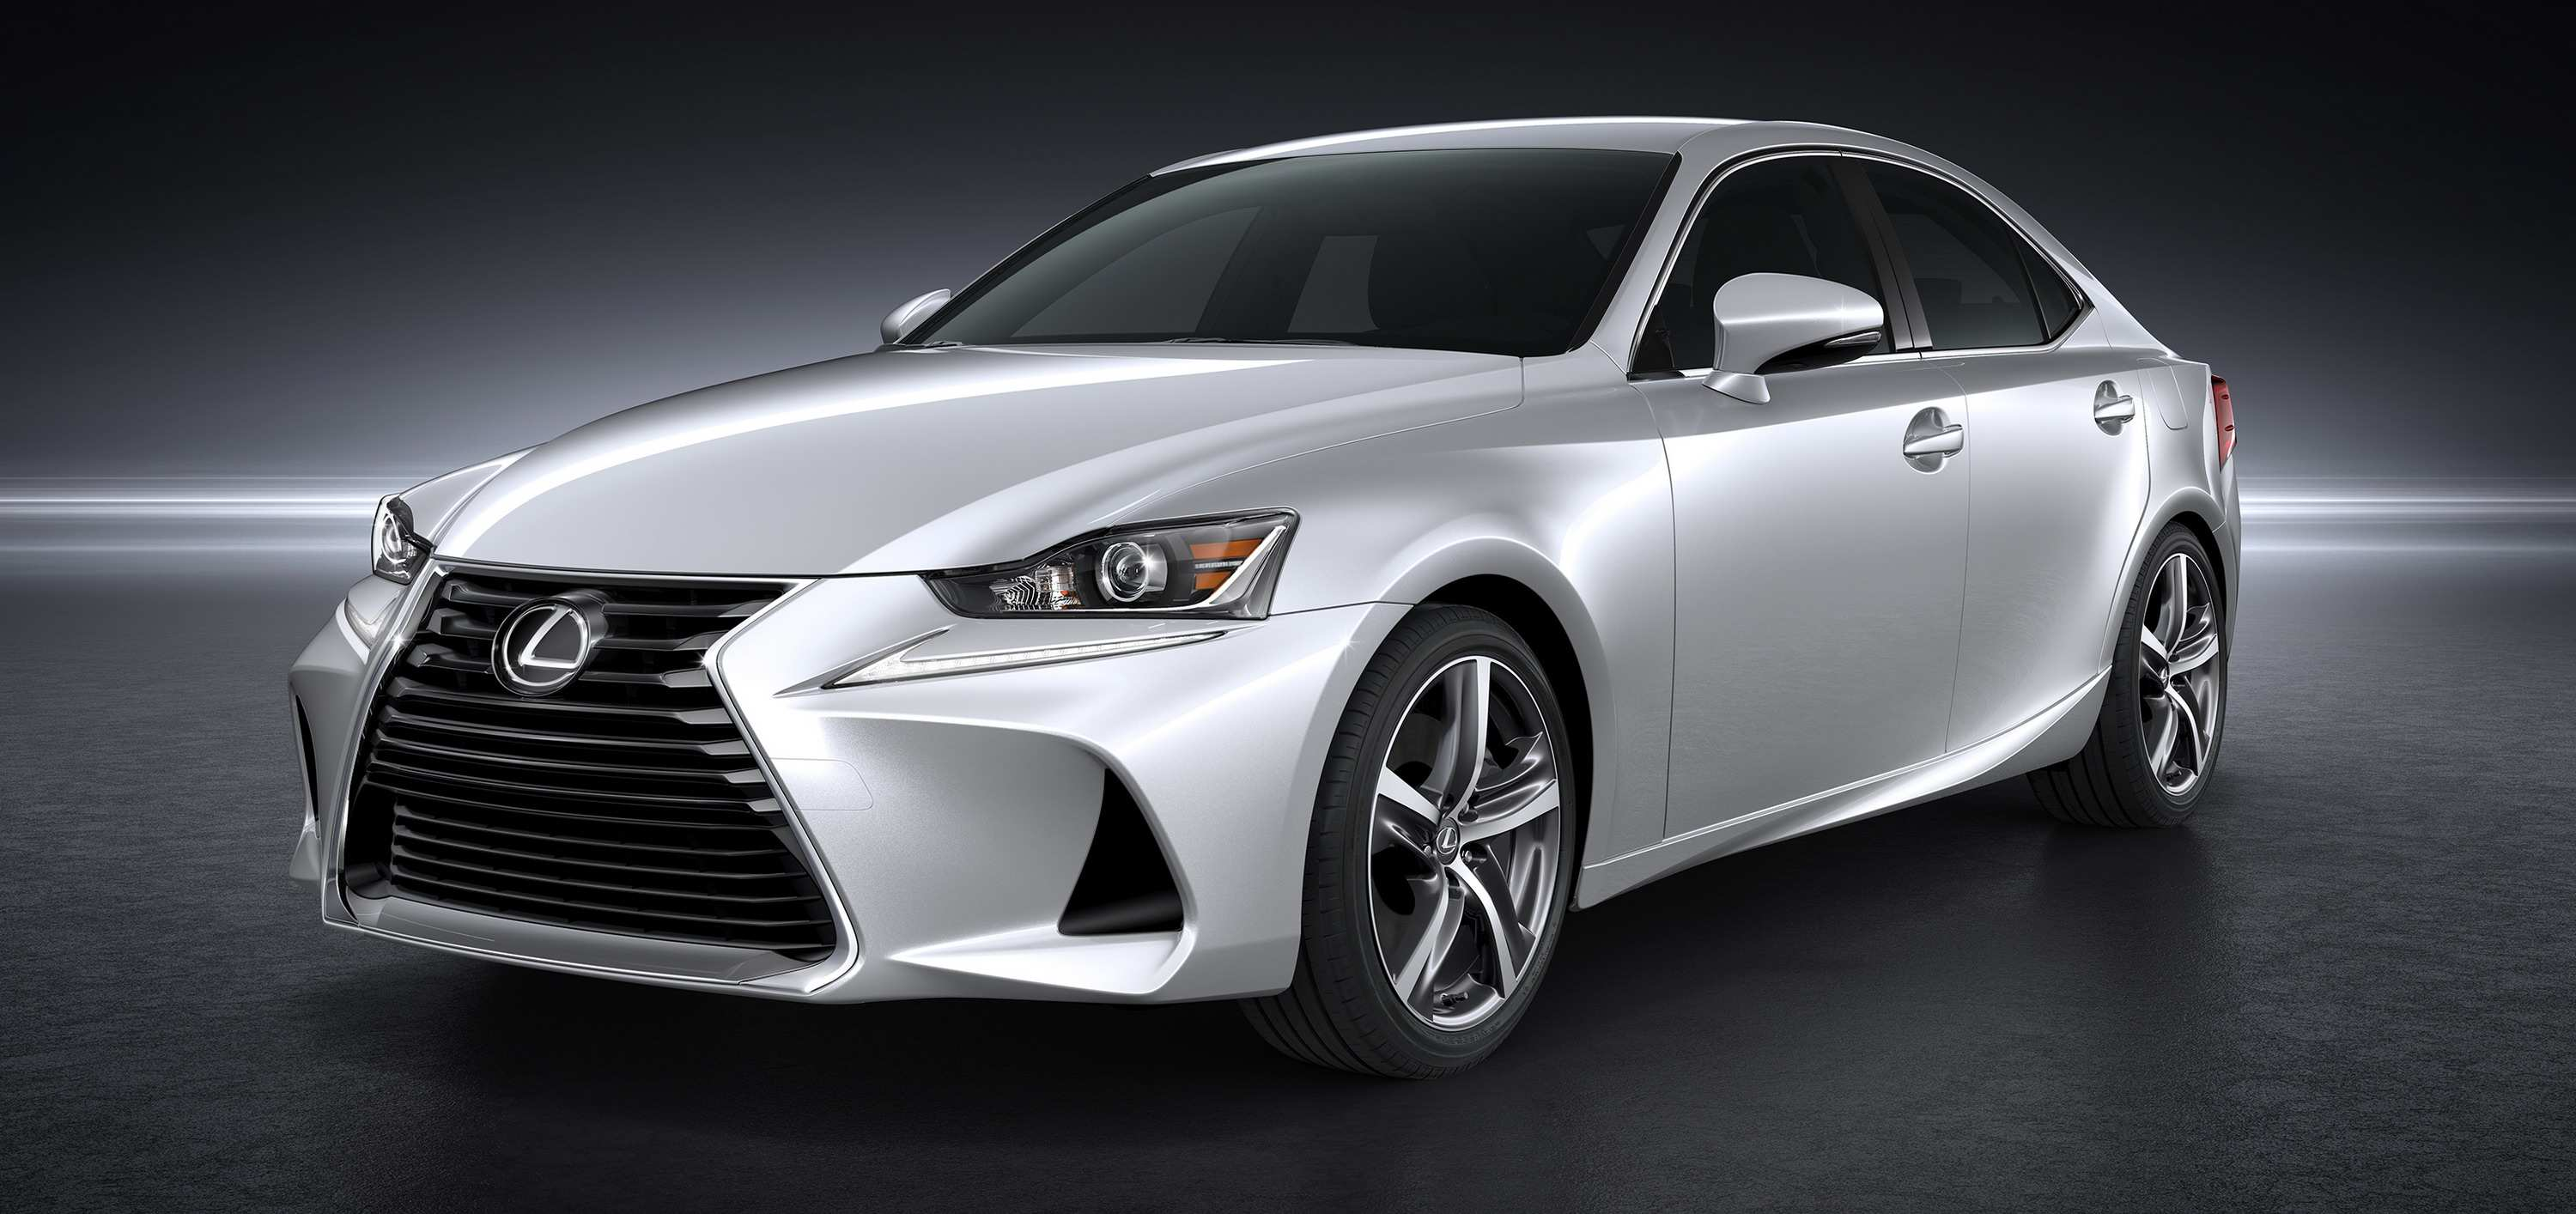 57 The Best Lexus Is300H 2020 Redesign And Concept